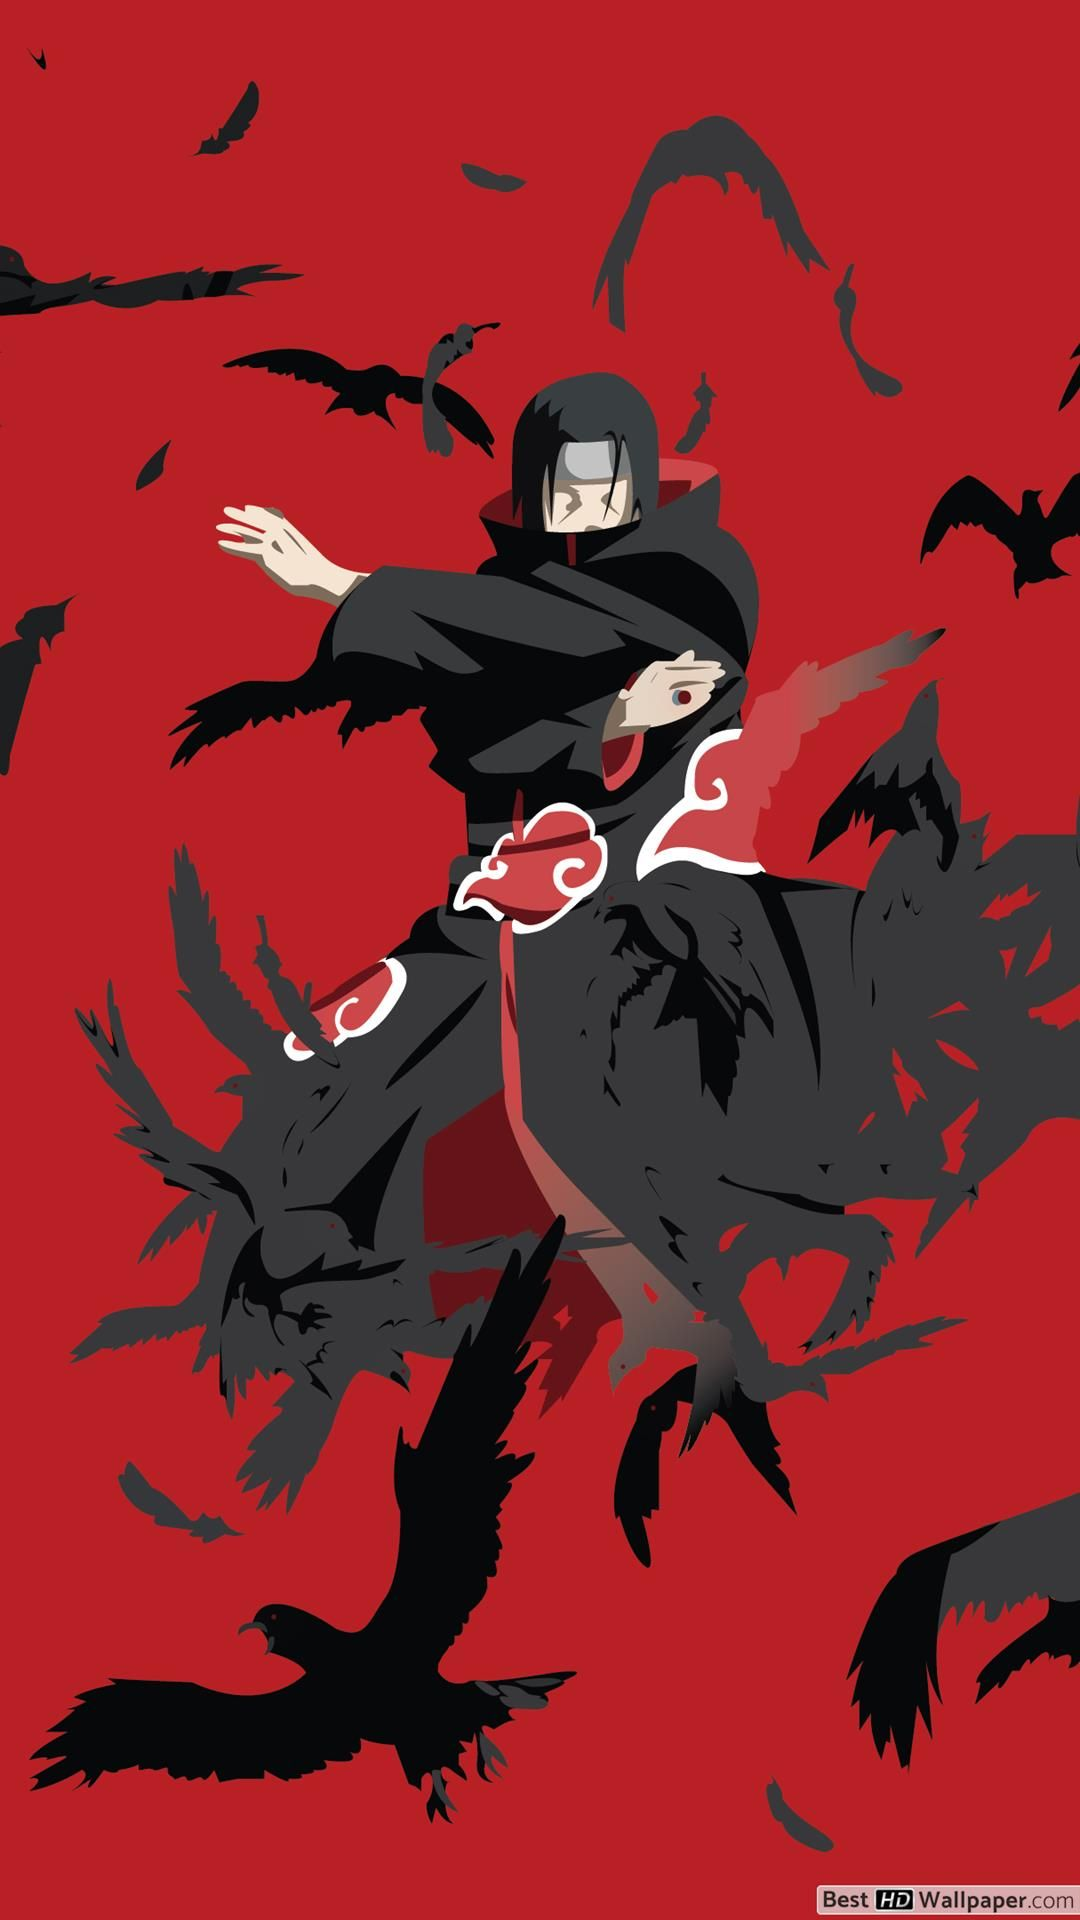 Itachi Uchiha Wallpaper Iphone 599203 Wallpaper Naruto Shippuden Itachi Uchiha Art Naruto Wallpaper Iphone